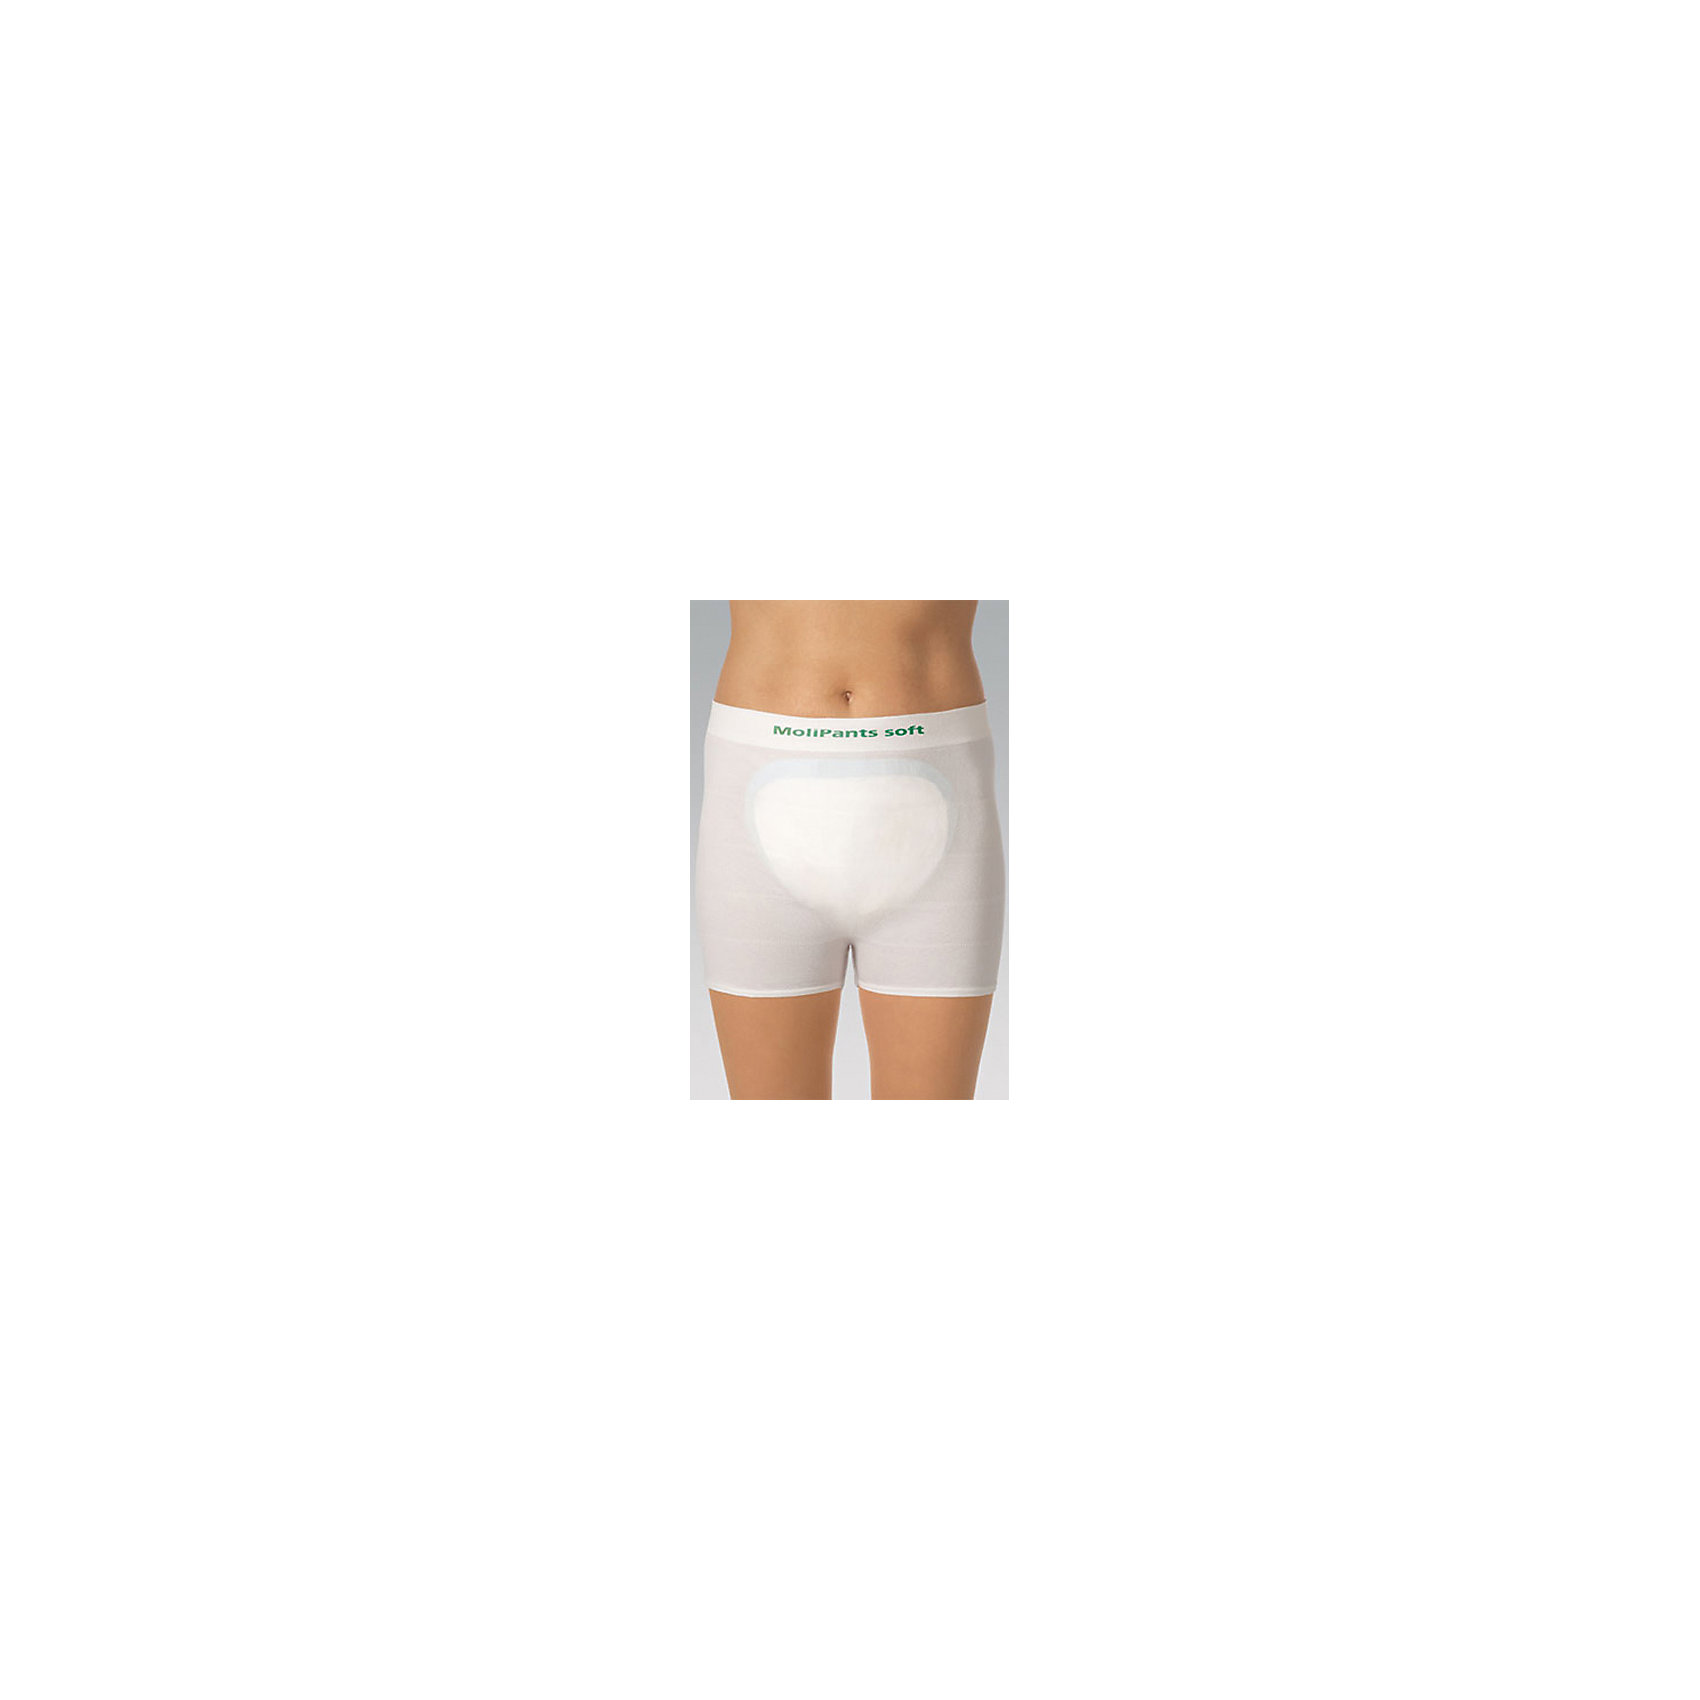 �������� ���������� MoliPants Soft (XL) 1 ��., Hartmann